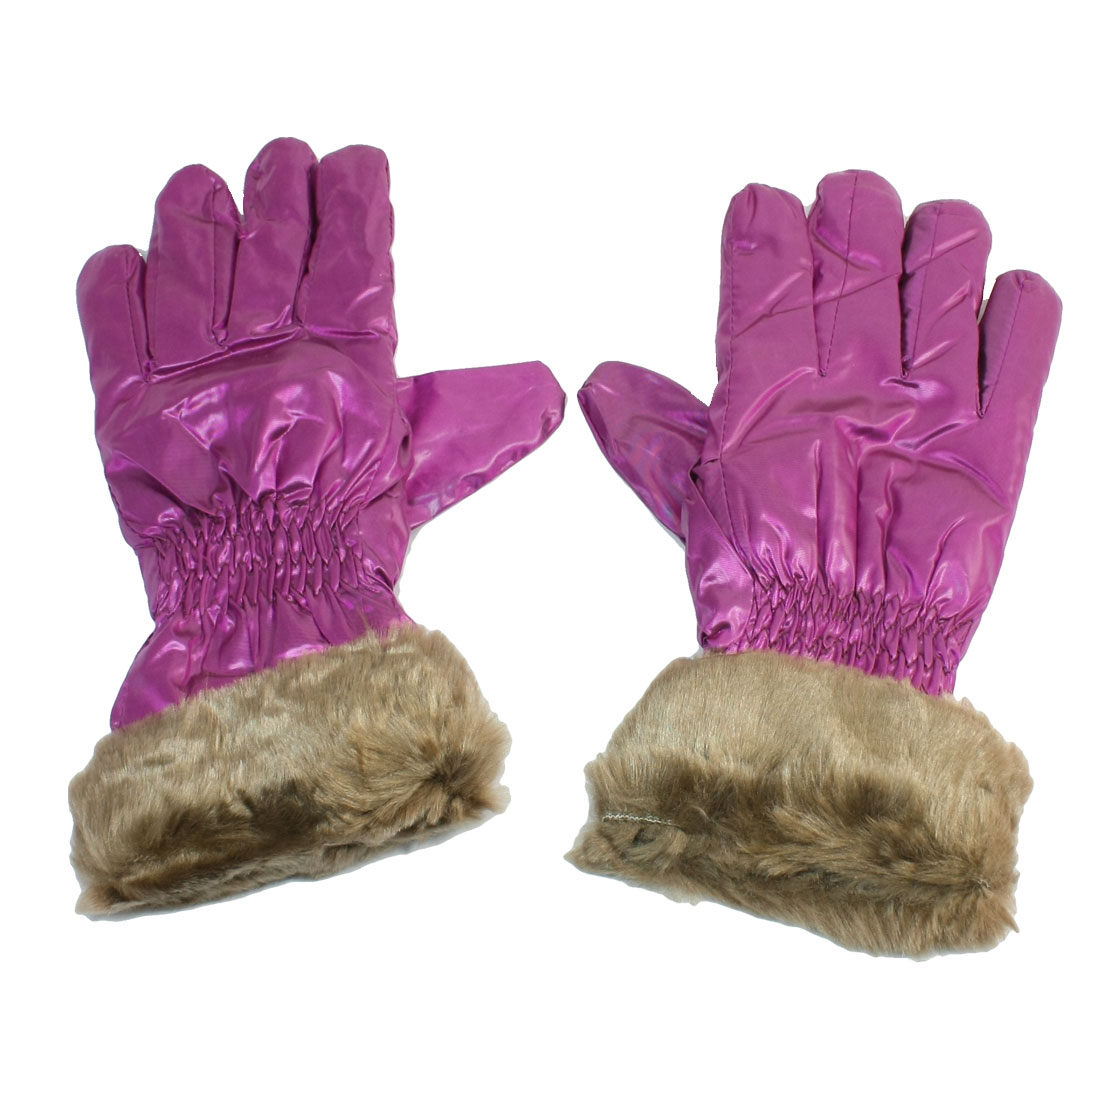 Ladies Ruched Decor Full Finger Winter Warm Gloves Purple Brown Pair